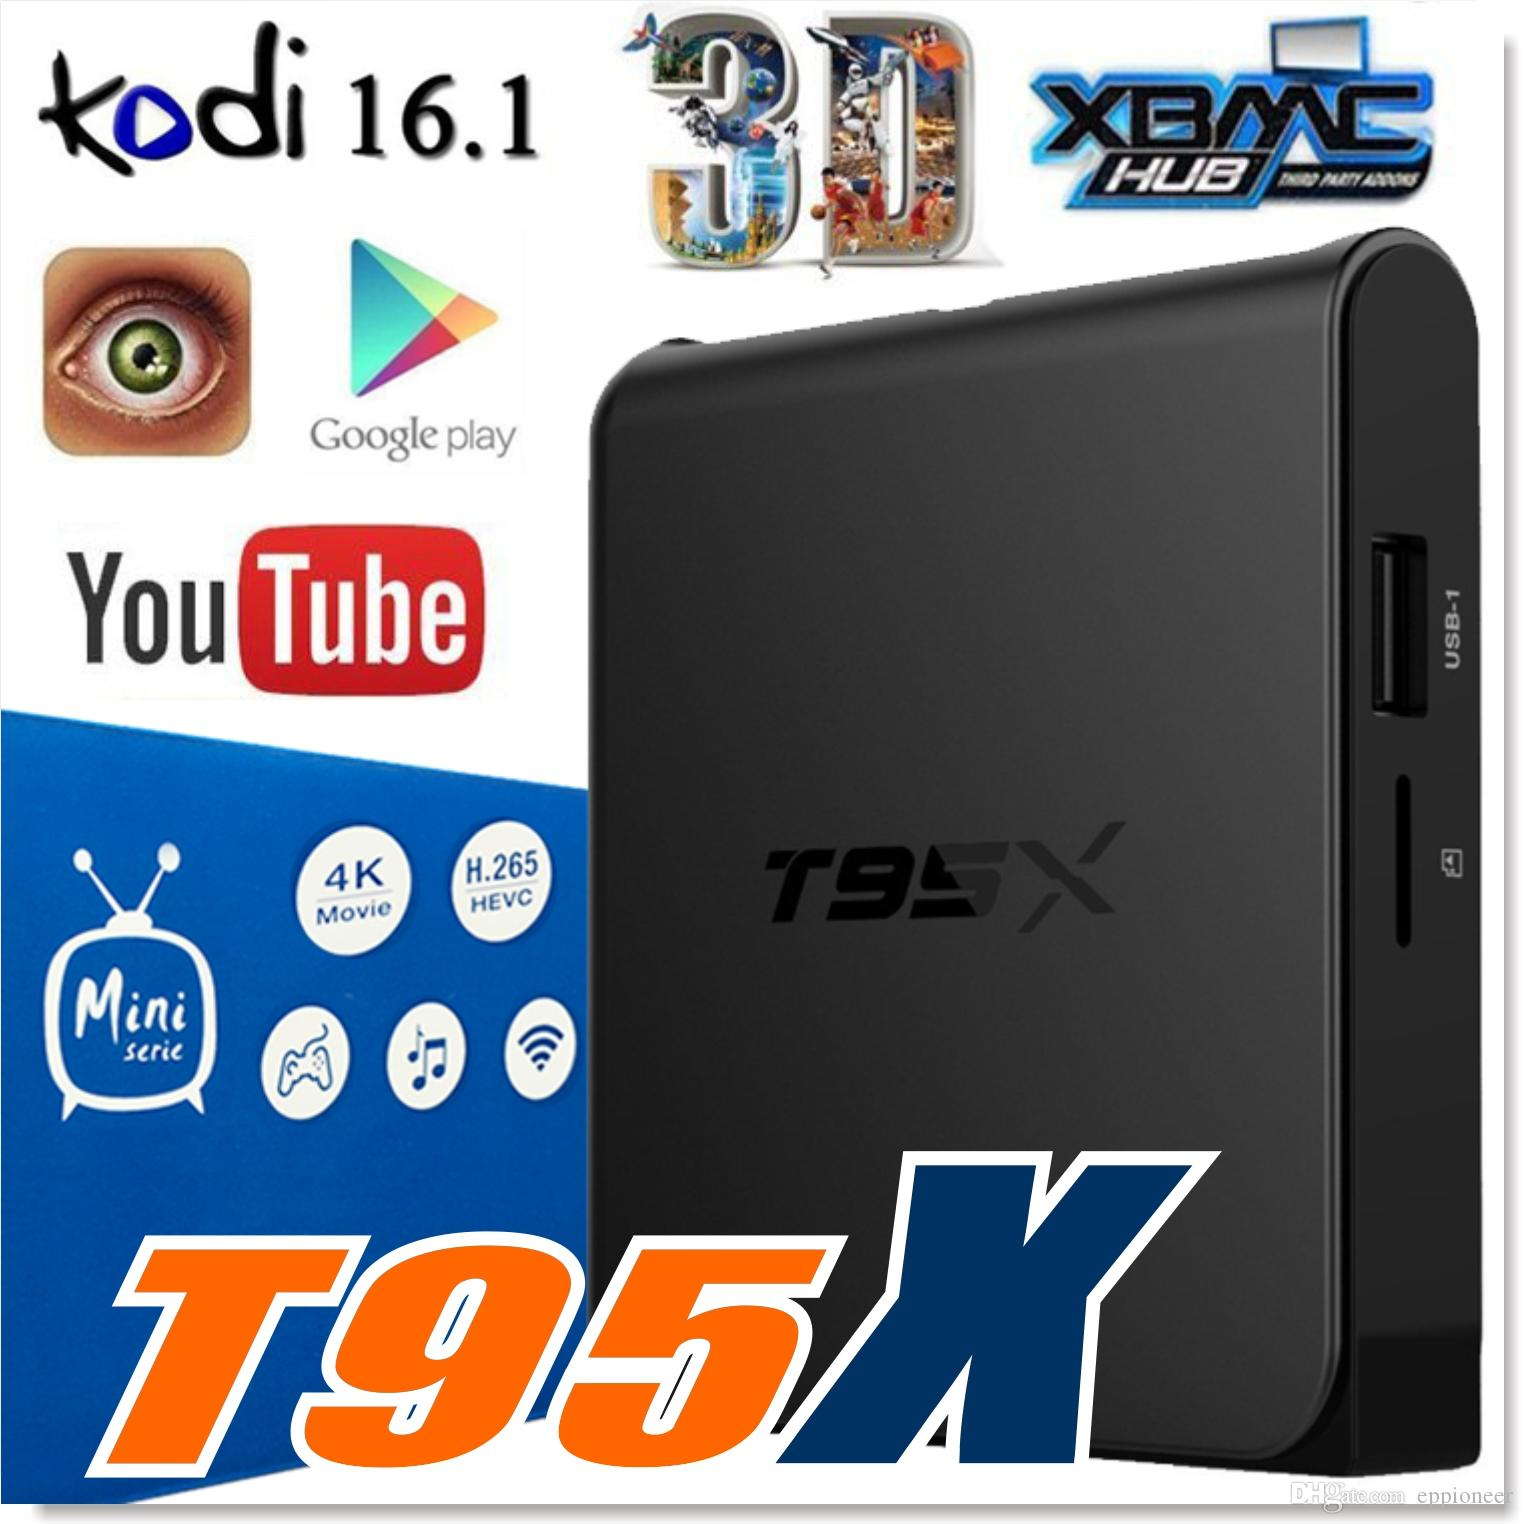 2017 Latest T95x Android Tv Box Amlogic S905x Quad Core Android 6 0 K O Di 16 1 Fully Loaded 1gb Ddr3 Ram 8gb Emmc Flash Miracast Wifi Dlna Net Tv Box Tv